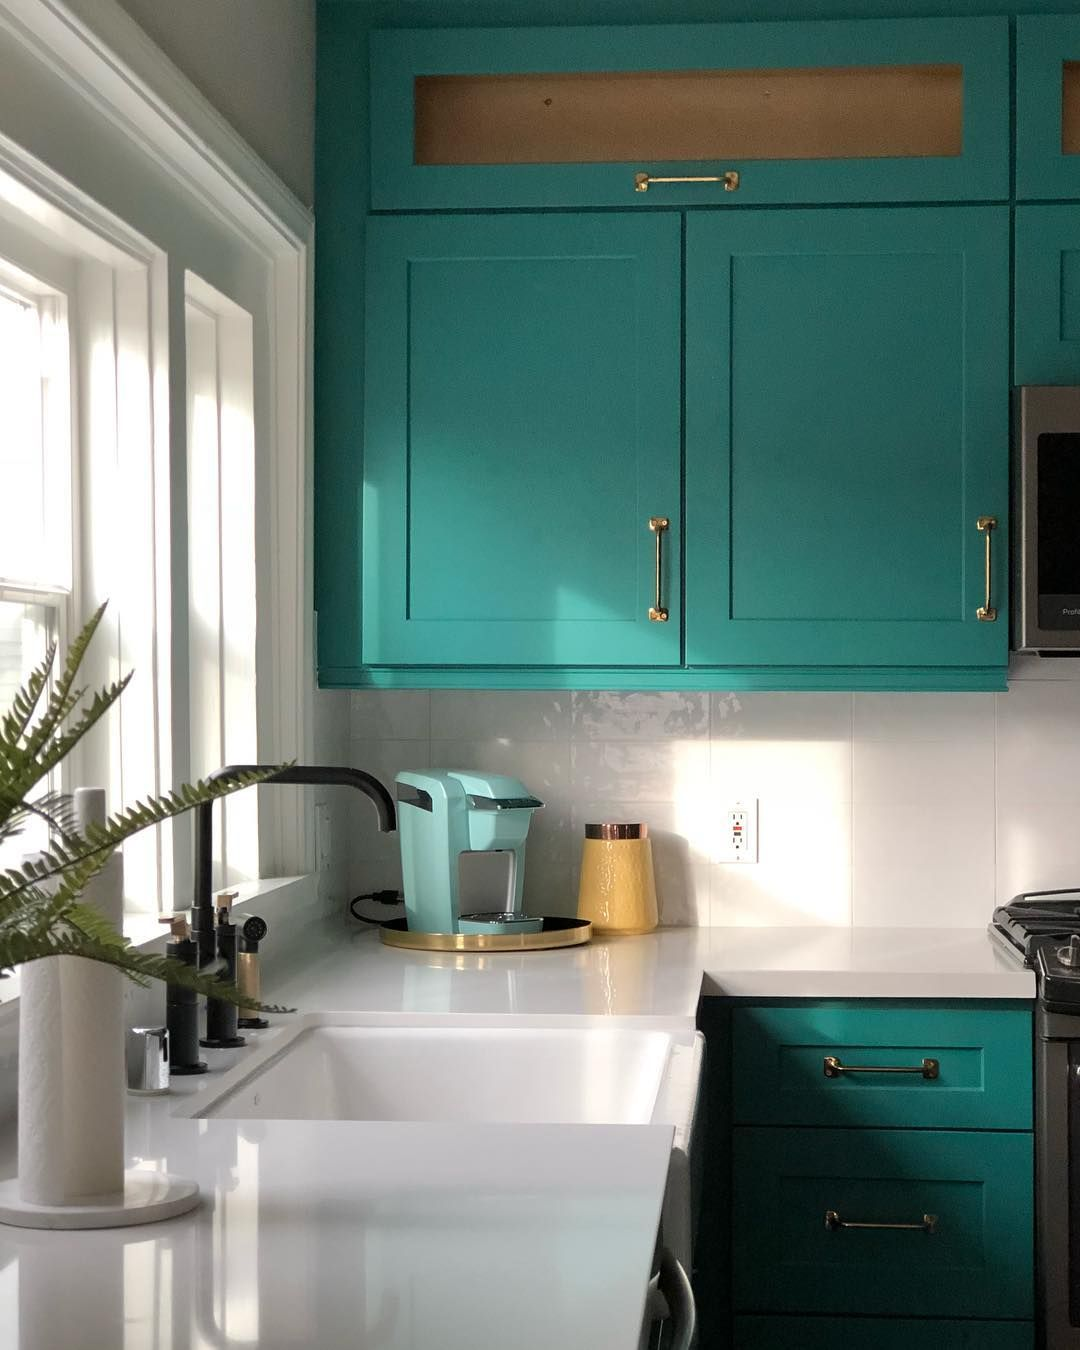 Teal Kitchen Cabinet Color With White Counters And White Tile Backsplash Kitchen Inspiration Design Diy Kitchen Renovation Teal Kitchen